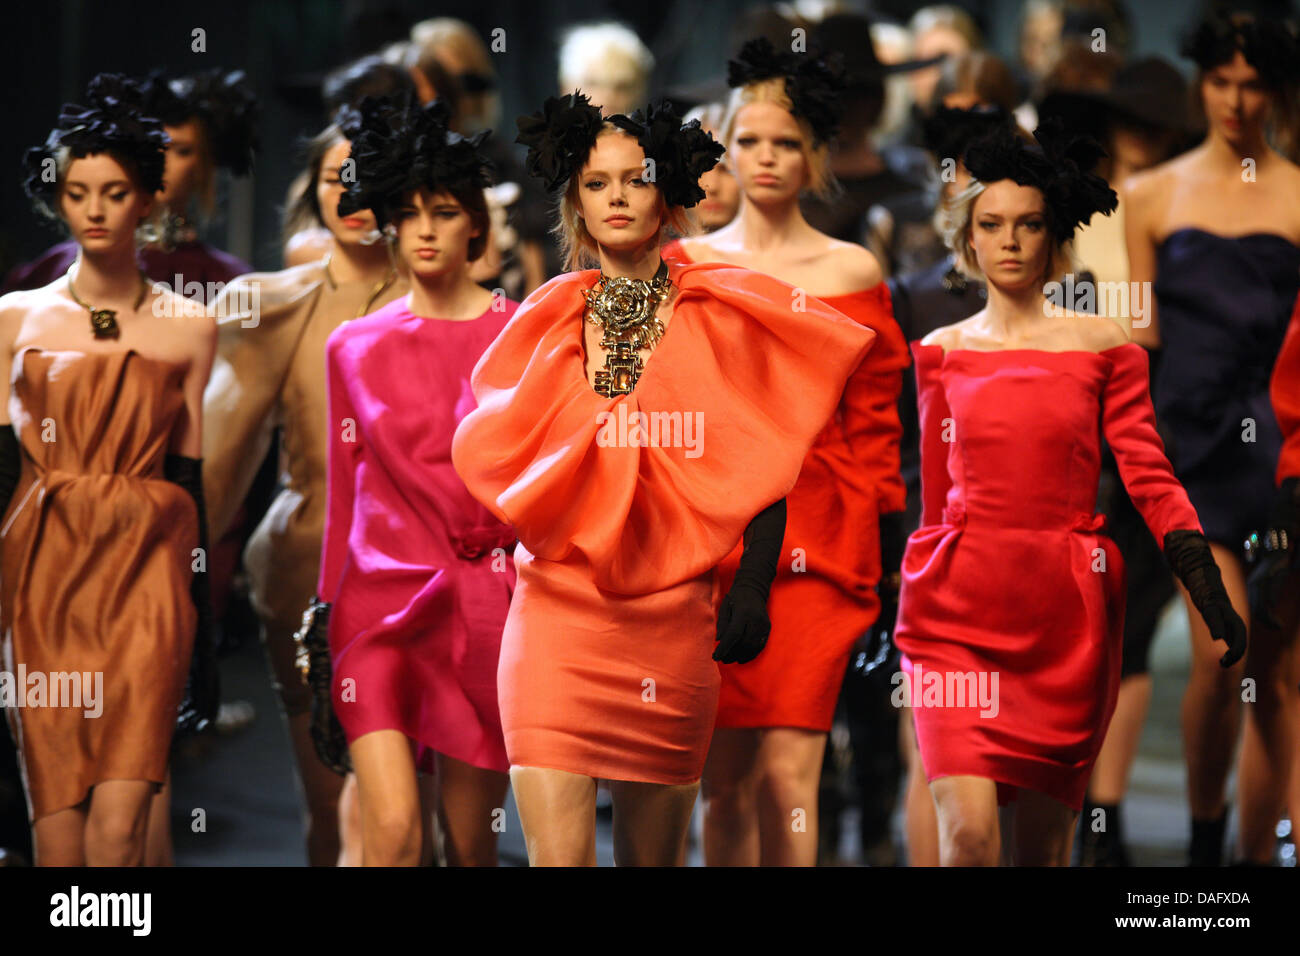 Moroccan Born Israeli Fashion Designer Alber Elbaz Presents His Stock Photo Alamy